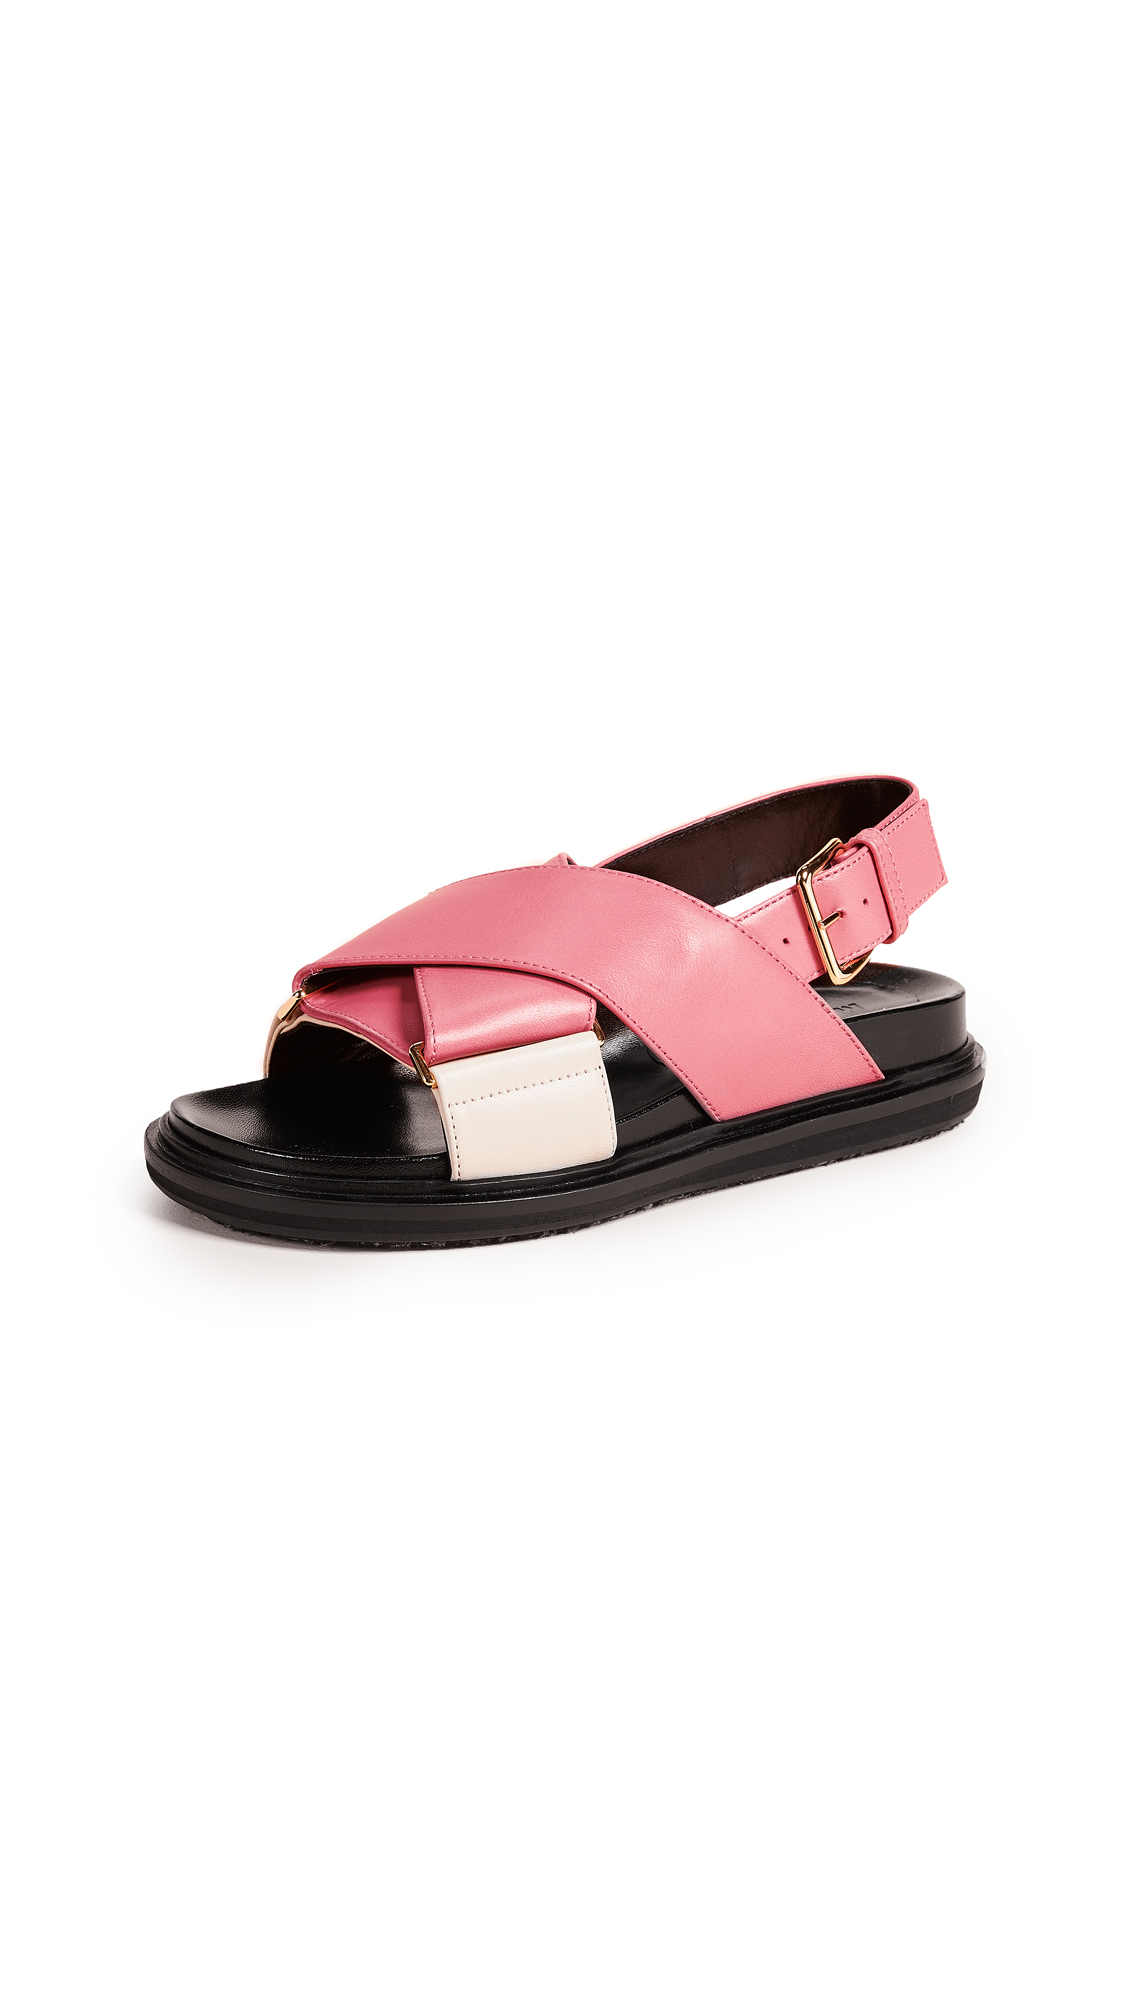 Marni Fussbett Sandals - Pink Candy/Antique White